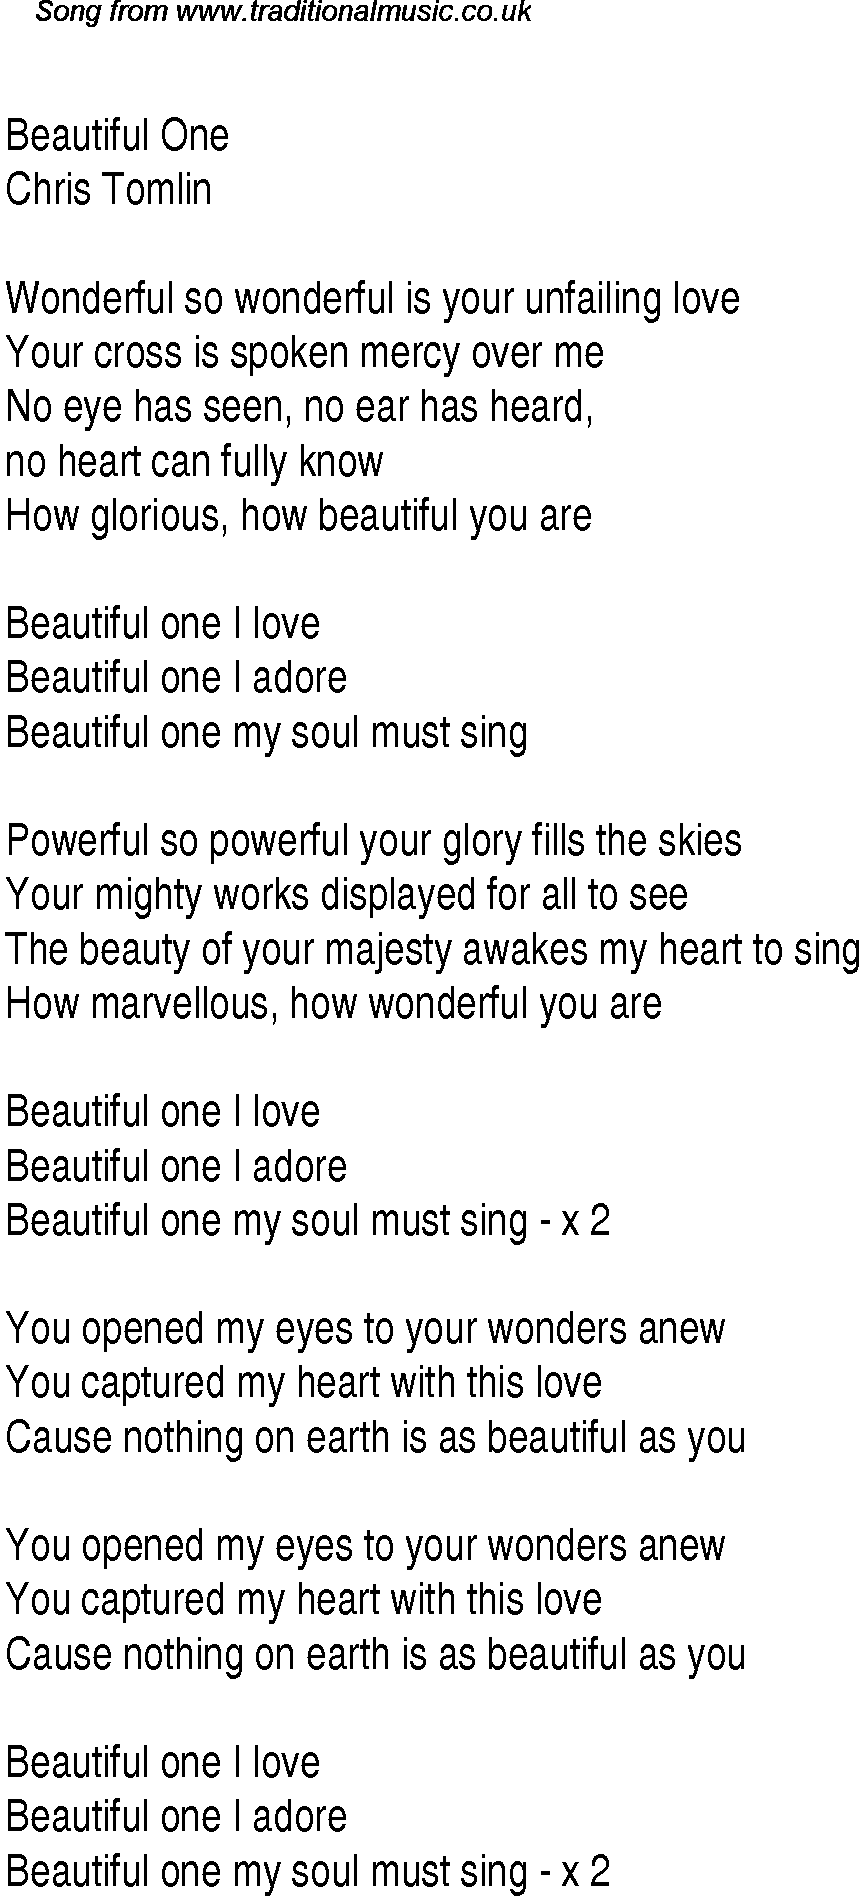 Beautiful one i love lyrics